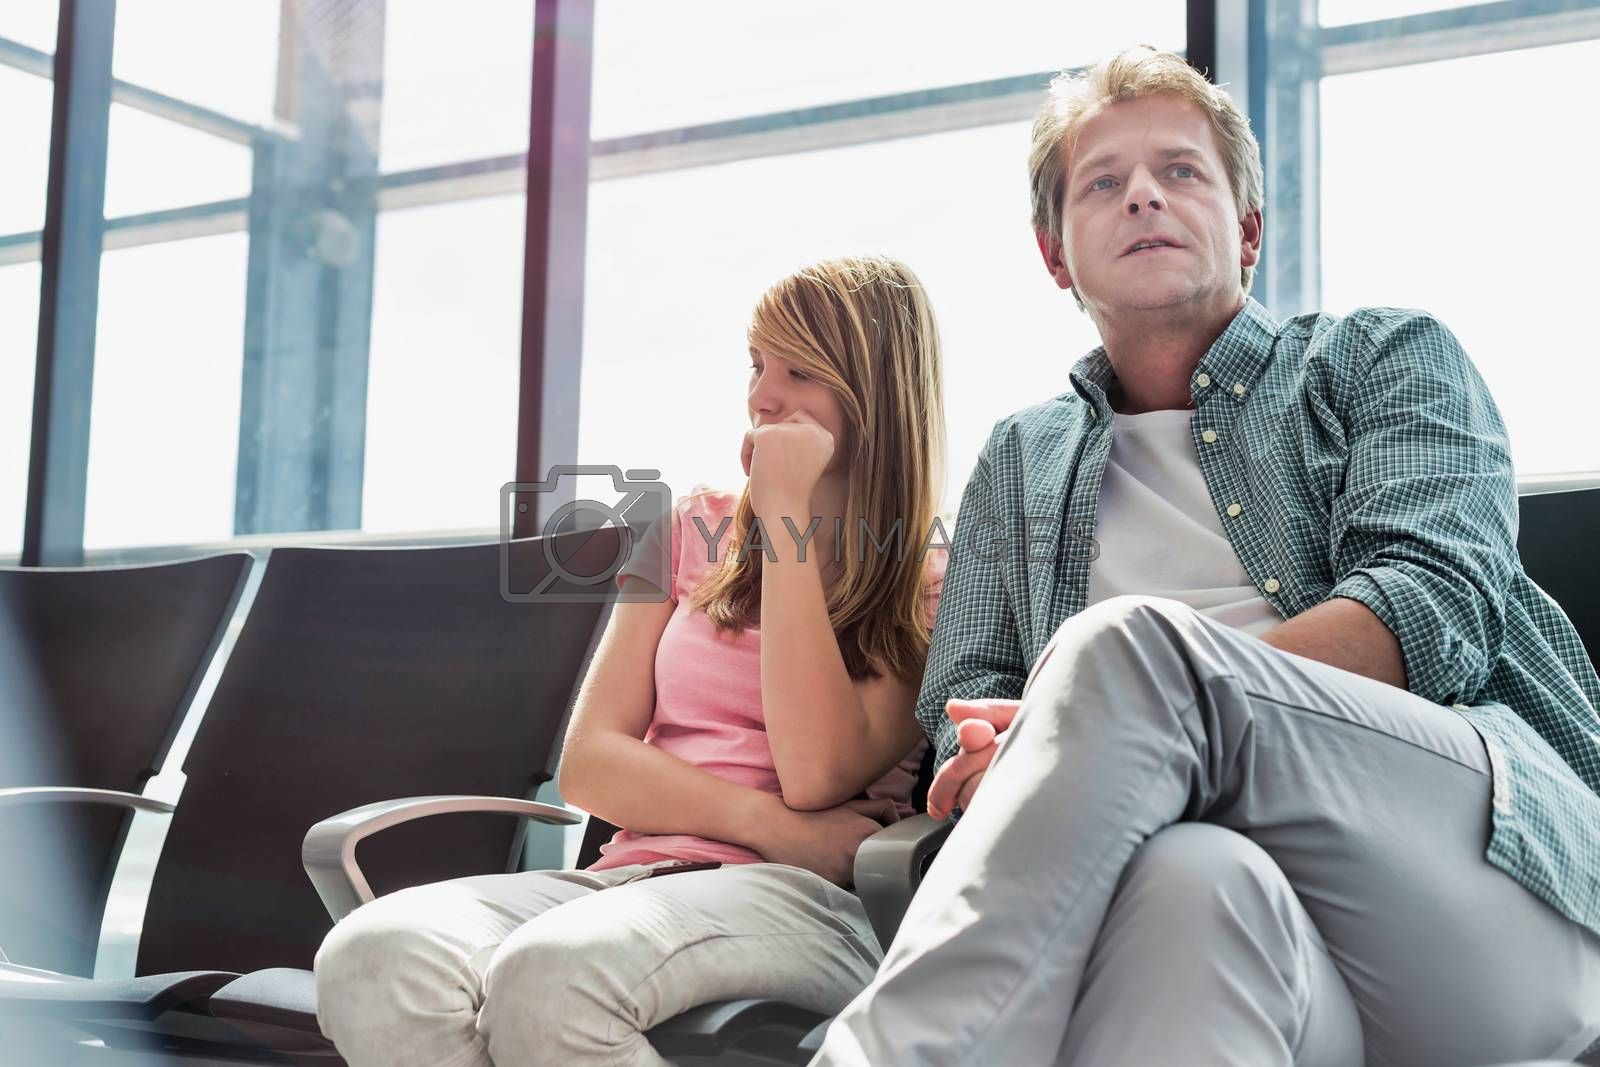 Mature man sitting with his daughter while waiting for their flight in airport